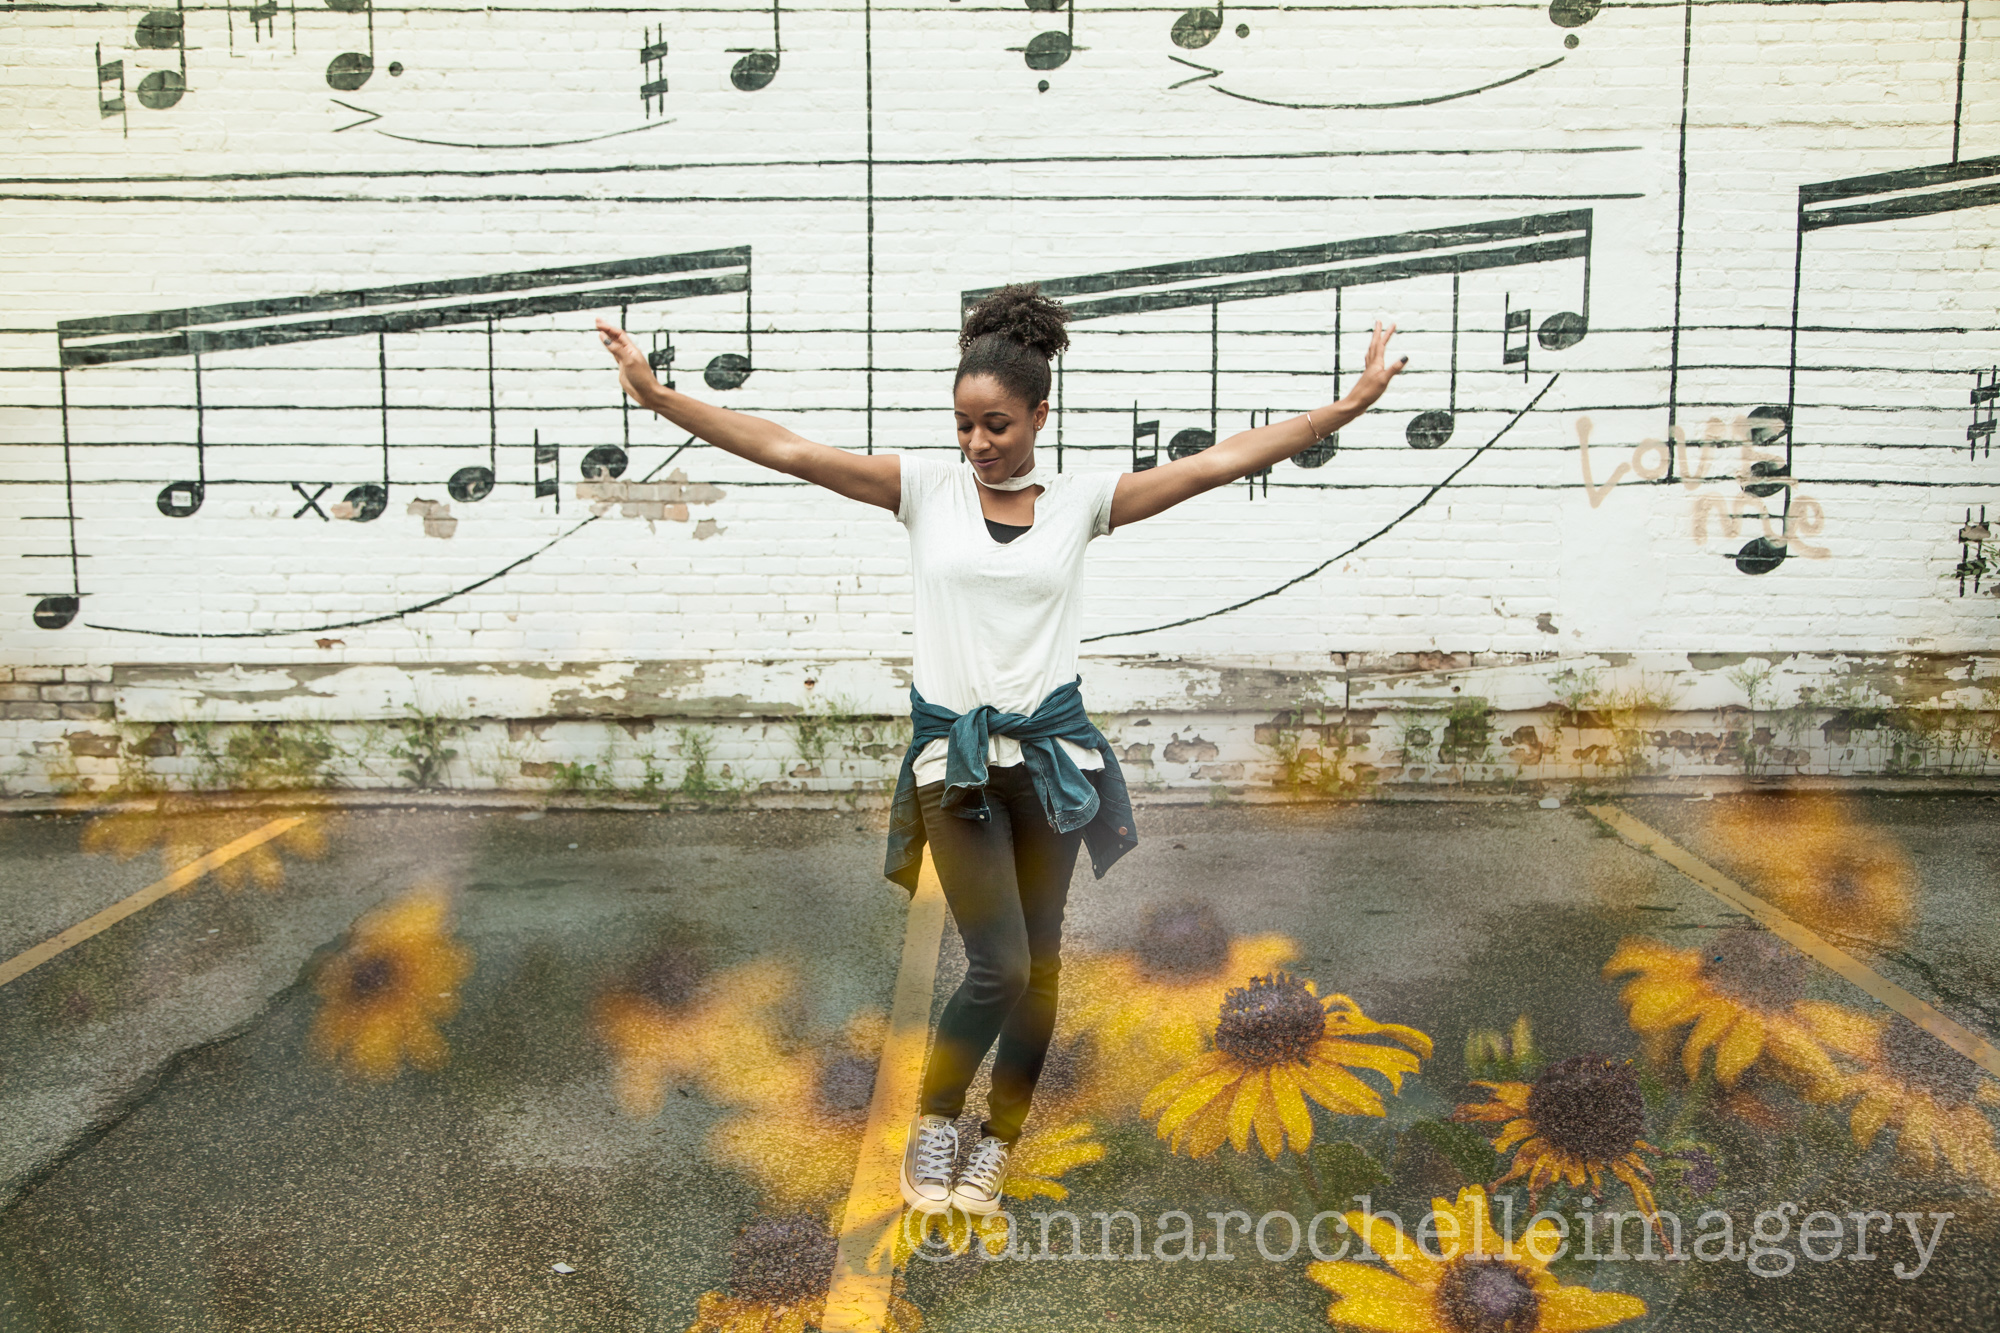 Minnesota-music-mural-portraits-prince-rainyday-seniors-creatives-anna rochelle imagery-3.jpg